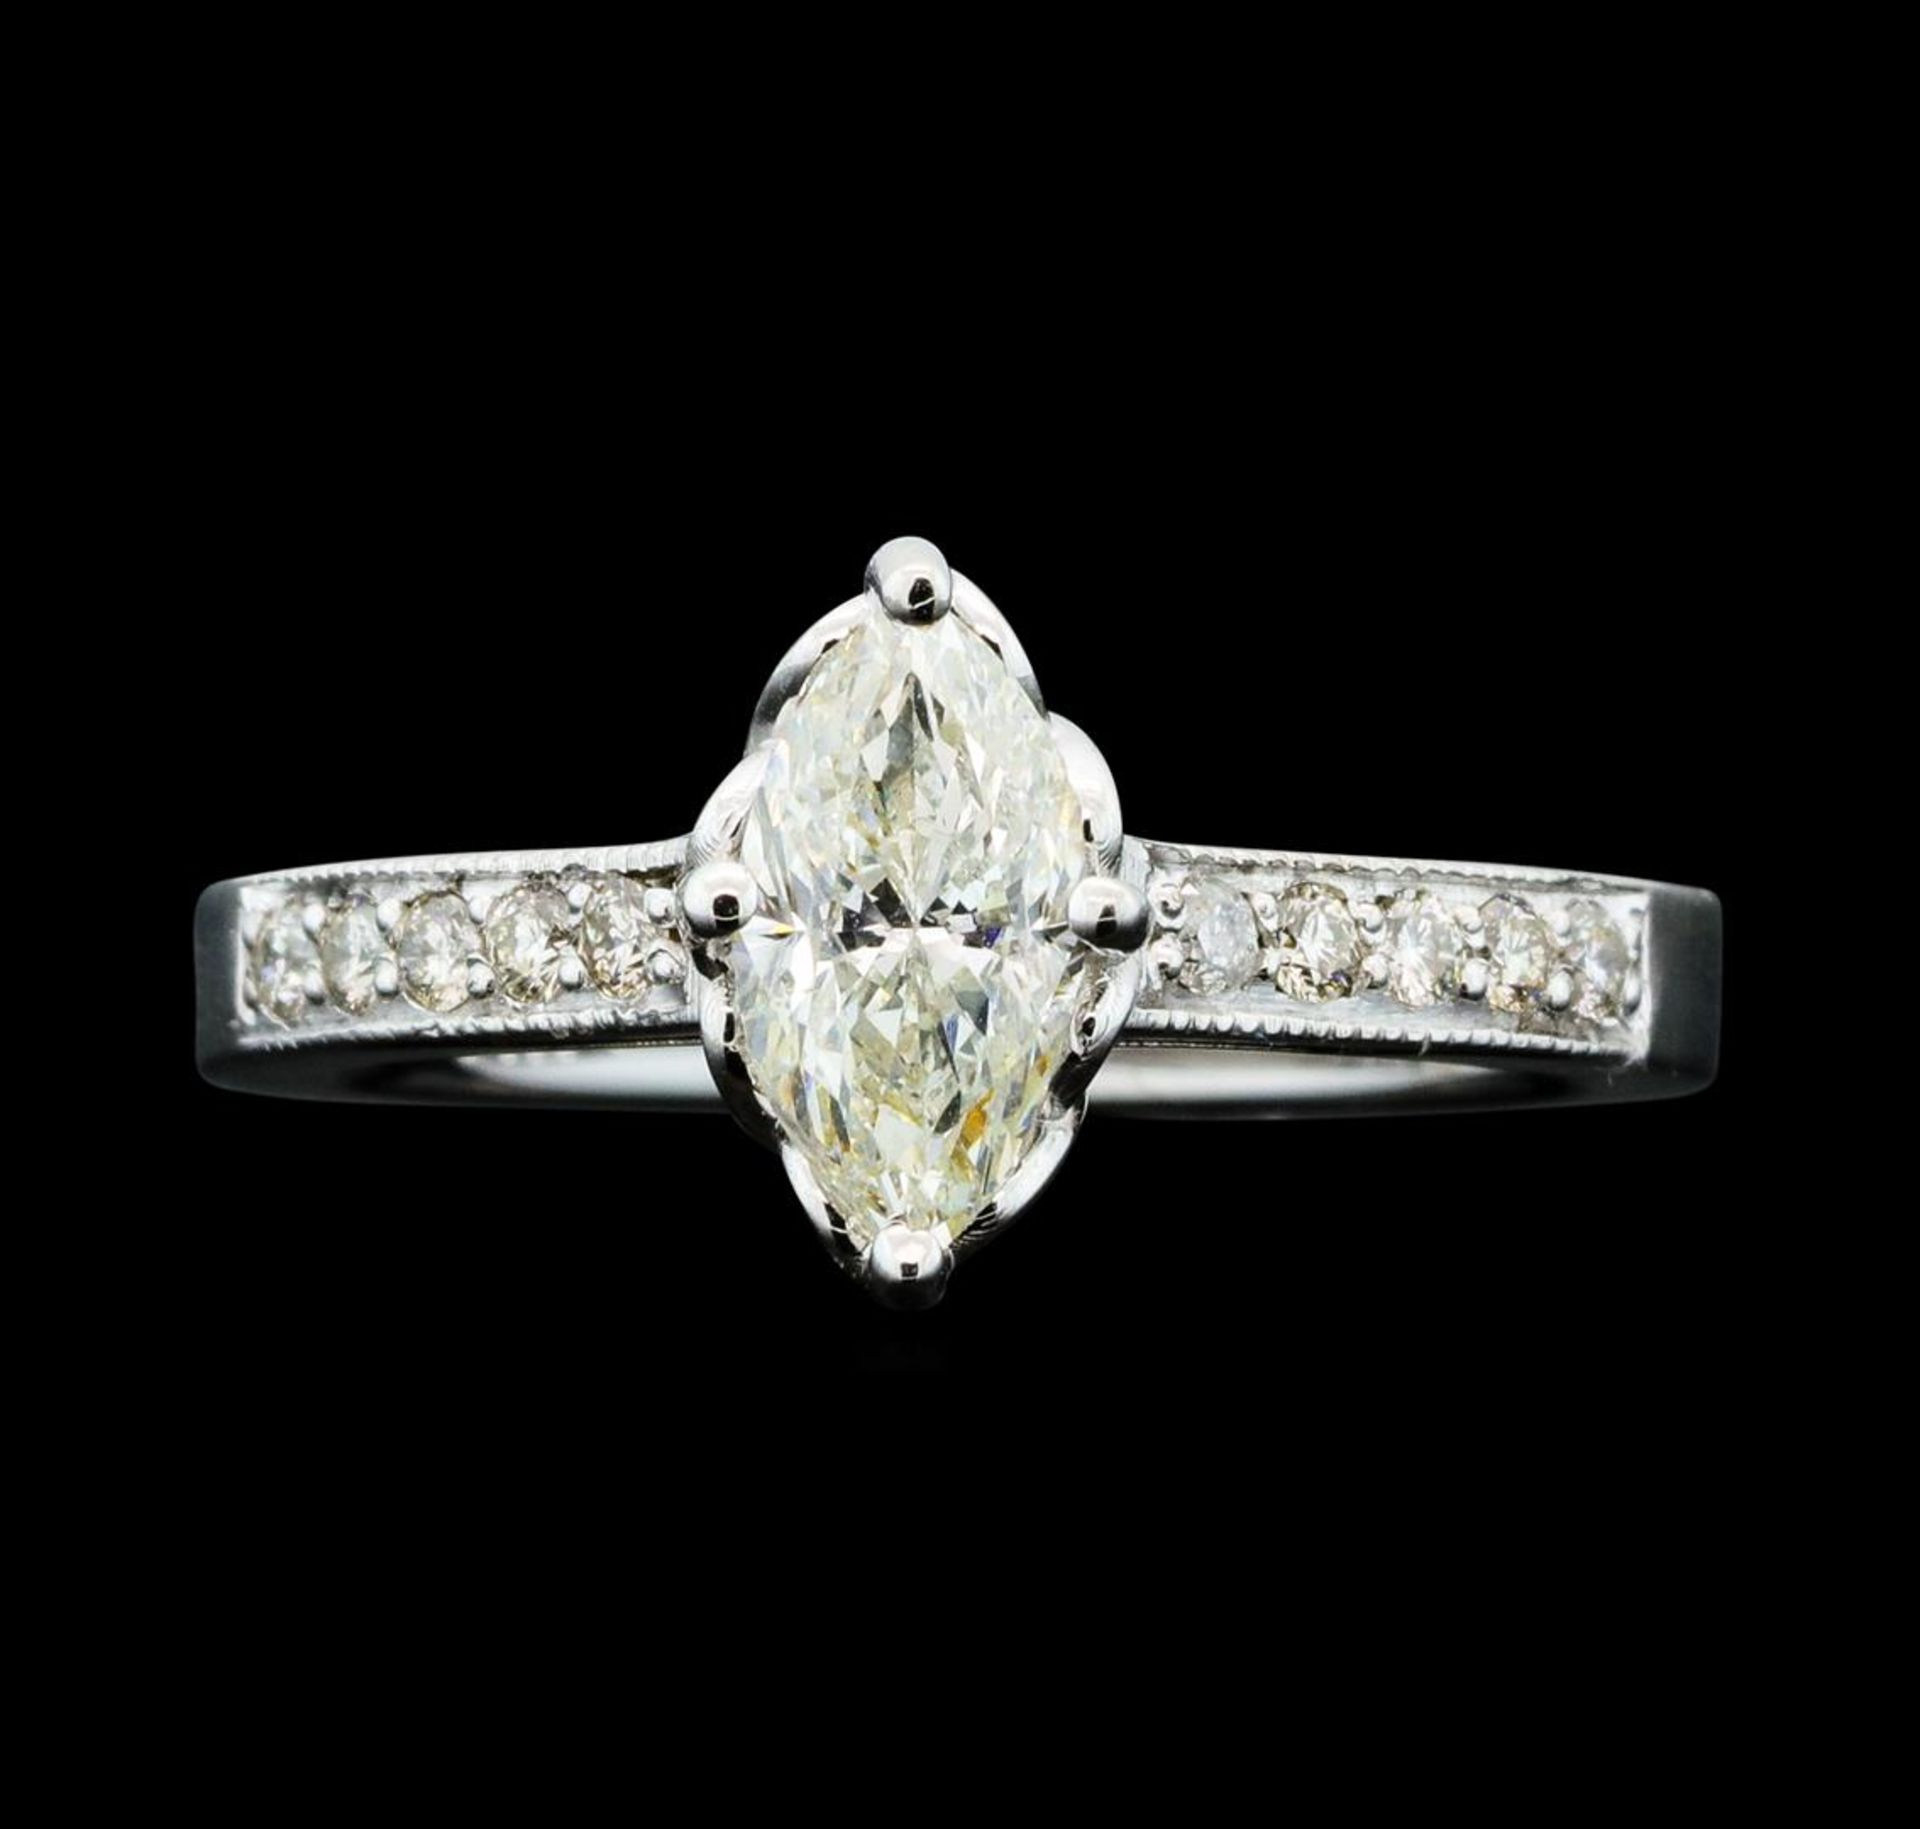 1.21 ctw Diamond Ring - 14KT White Gold - Image 2 of 5